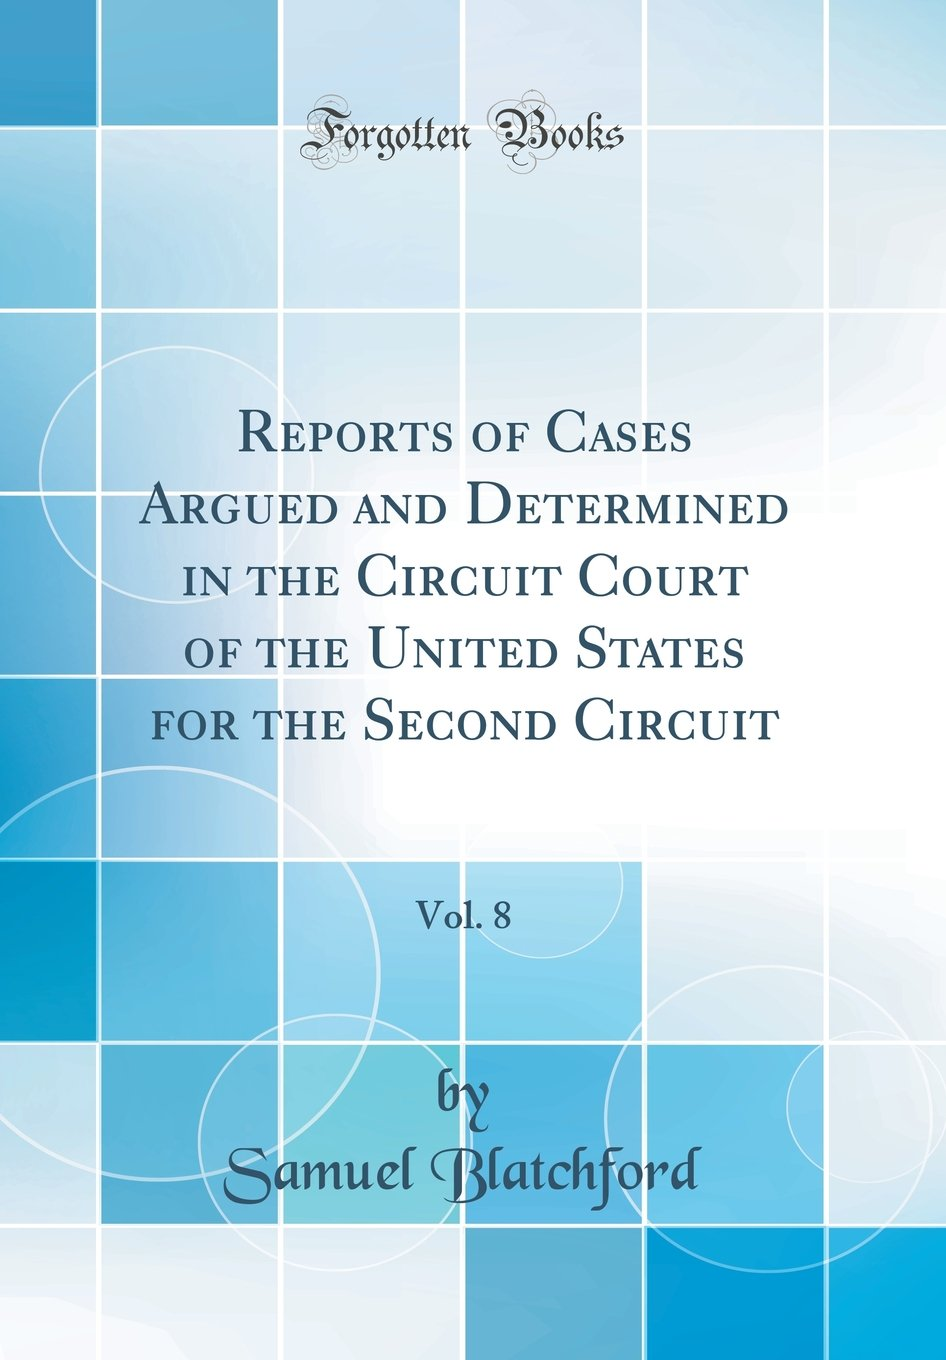 Download Reports of Cases Argued and Determined in the Circuit Court of the United States for the Second Circuit, Vol. 8 (Classic Reprint) pdf